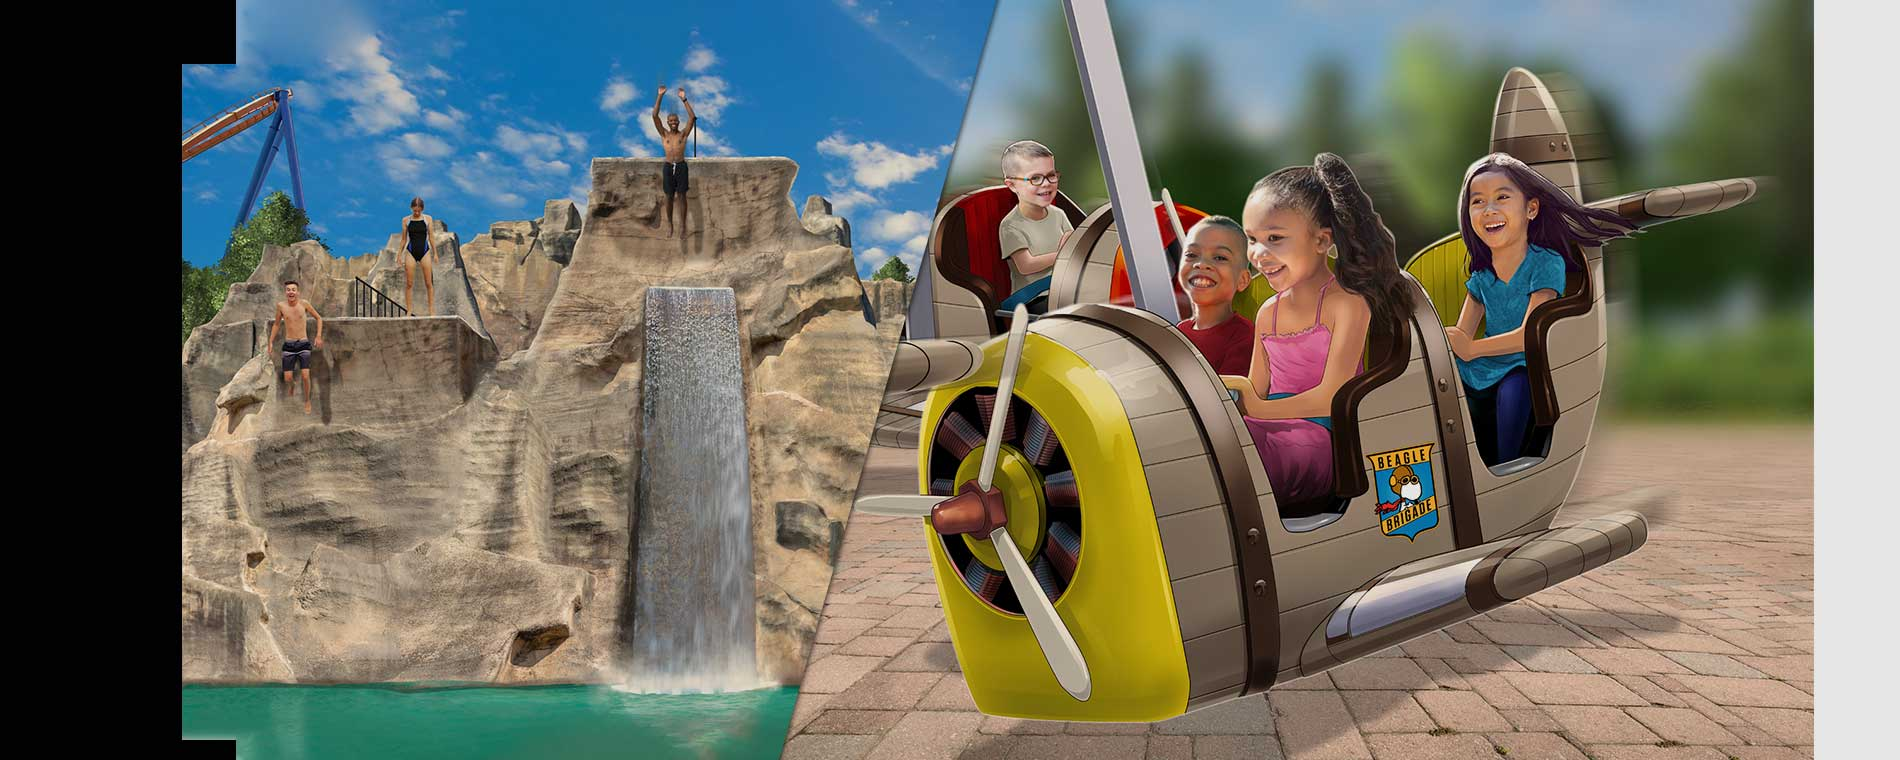 New Rides and Attractions Coming to Canada's Wonderland Amusement Park in 2020